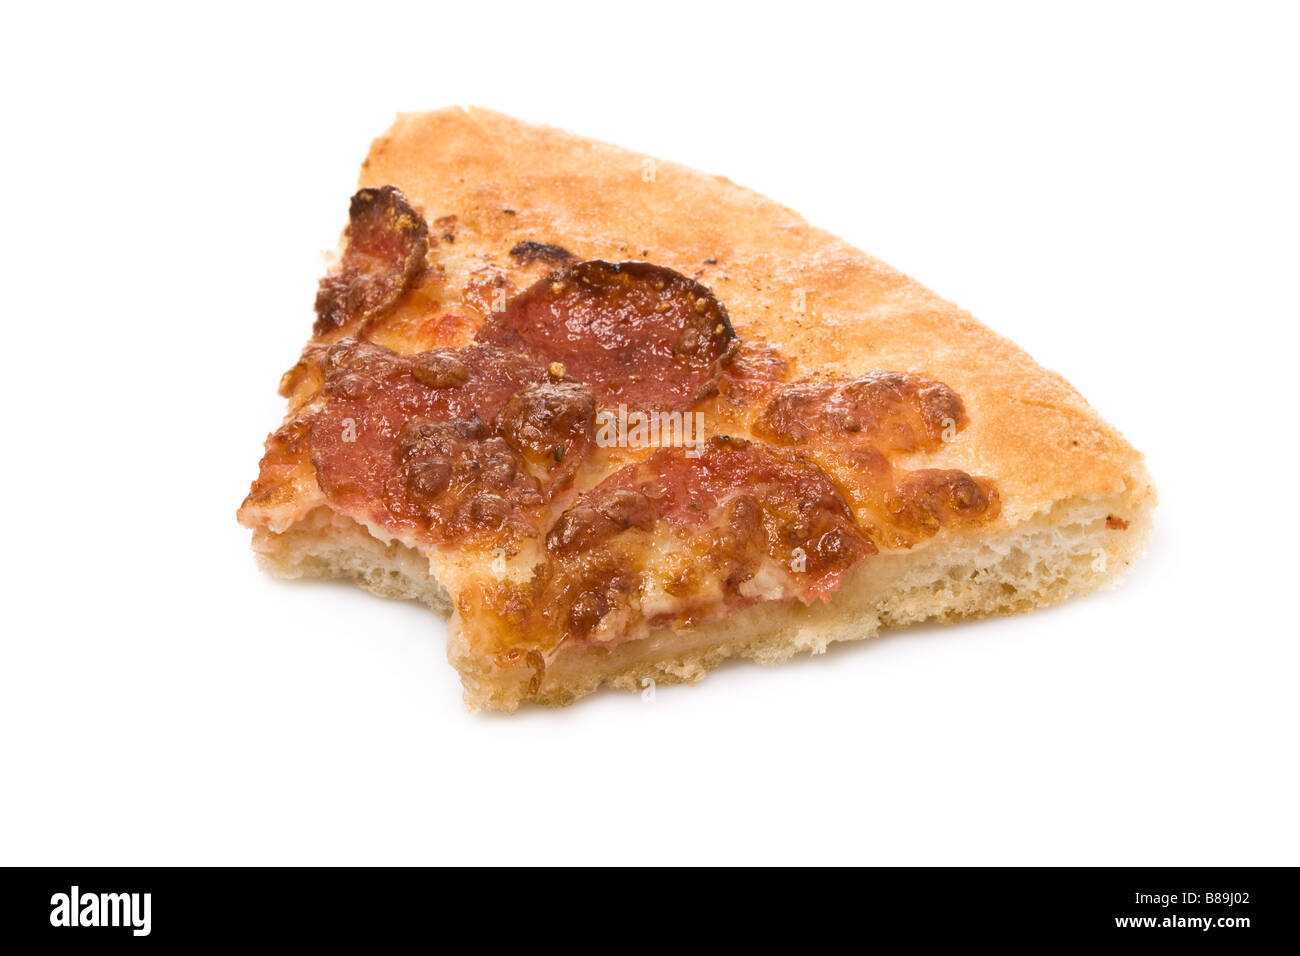 Bitten pepperoni pizza slice leftovers isolated on white background. cut out cutout fast food junk bite eaten cheese - Stock Image